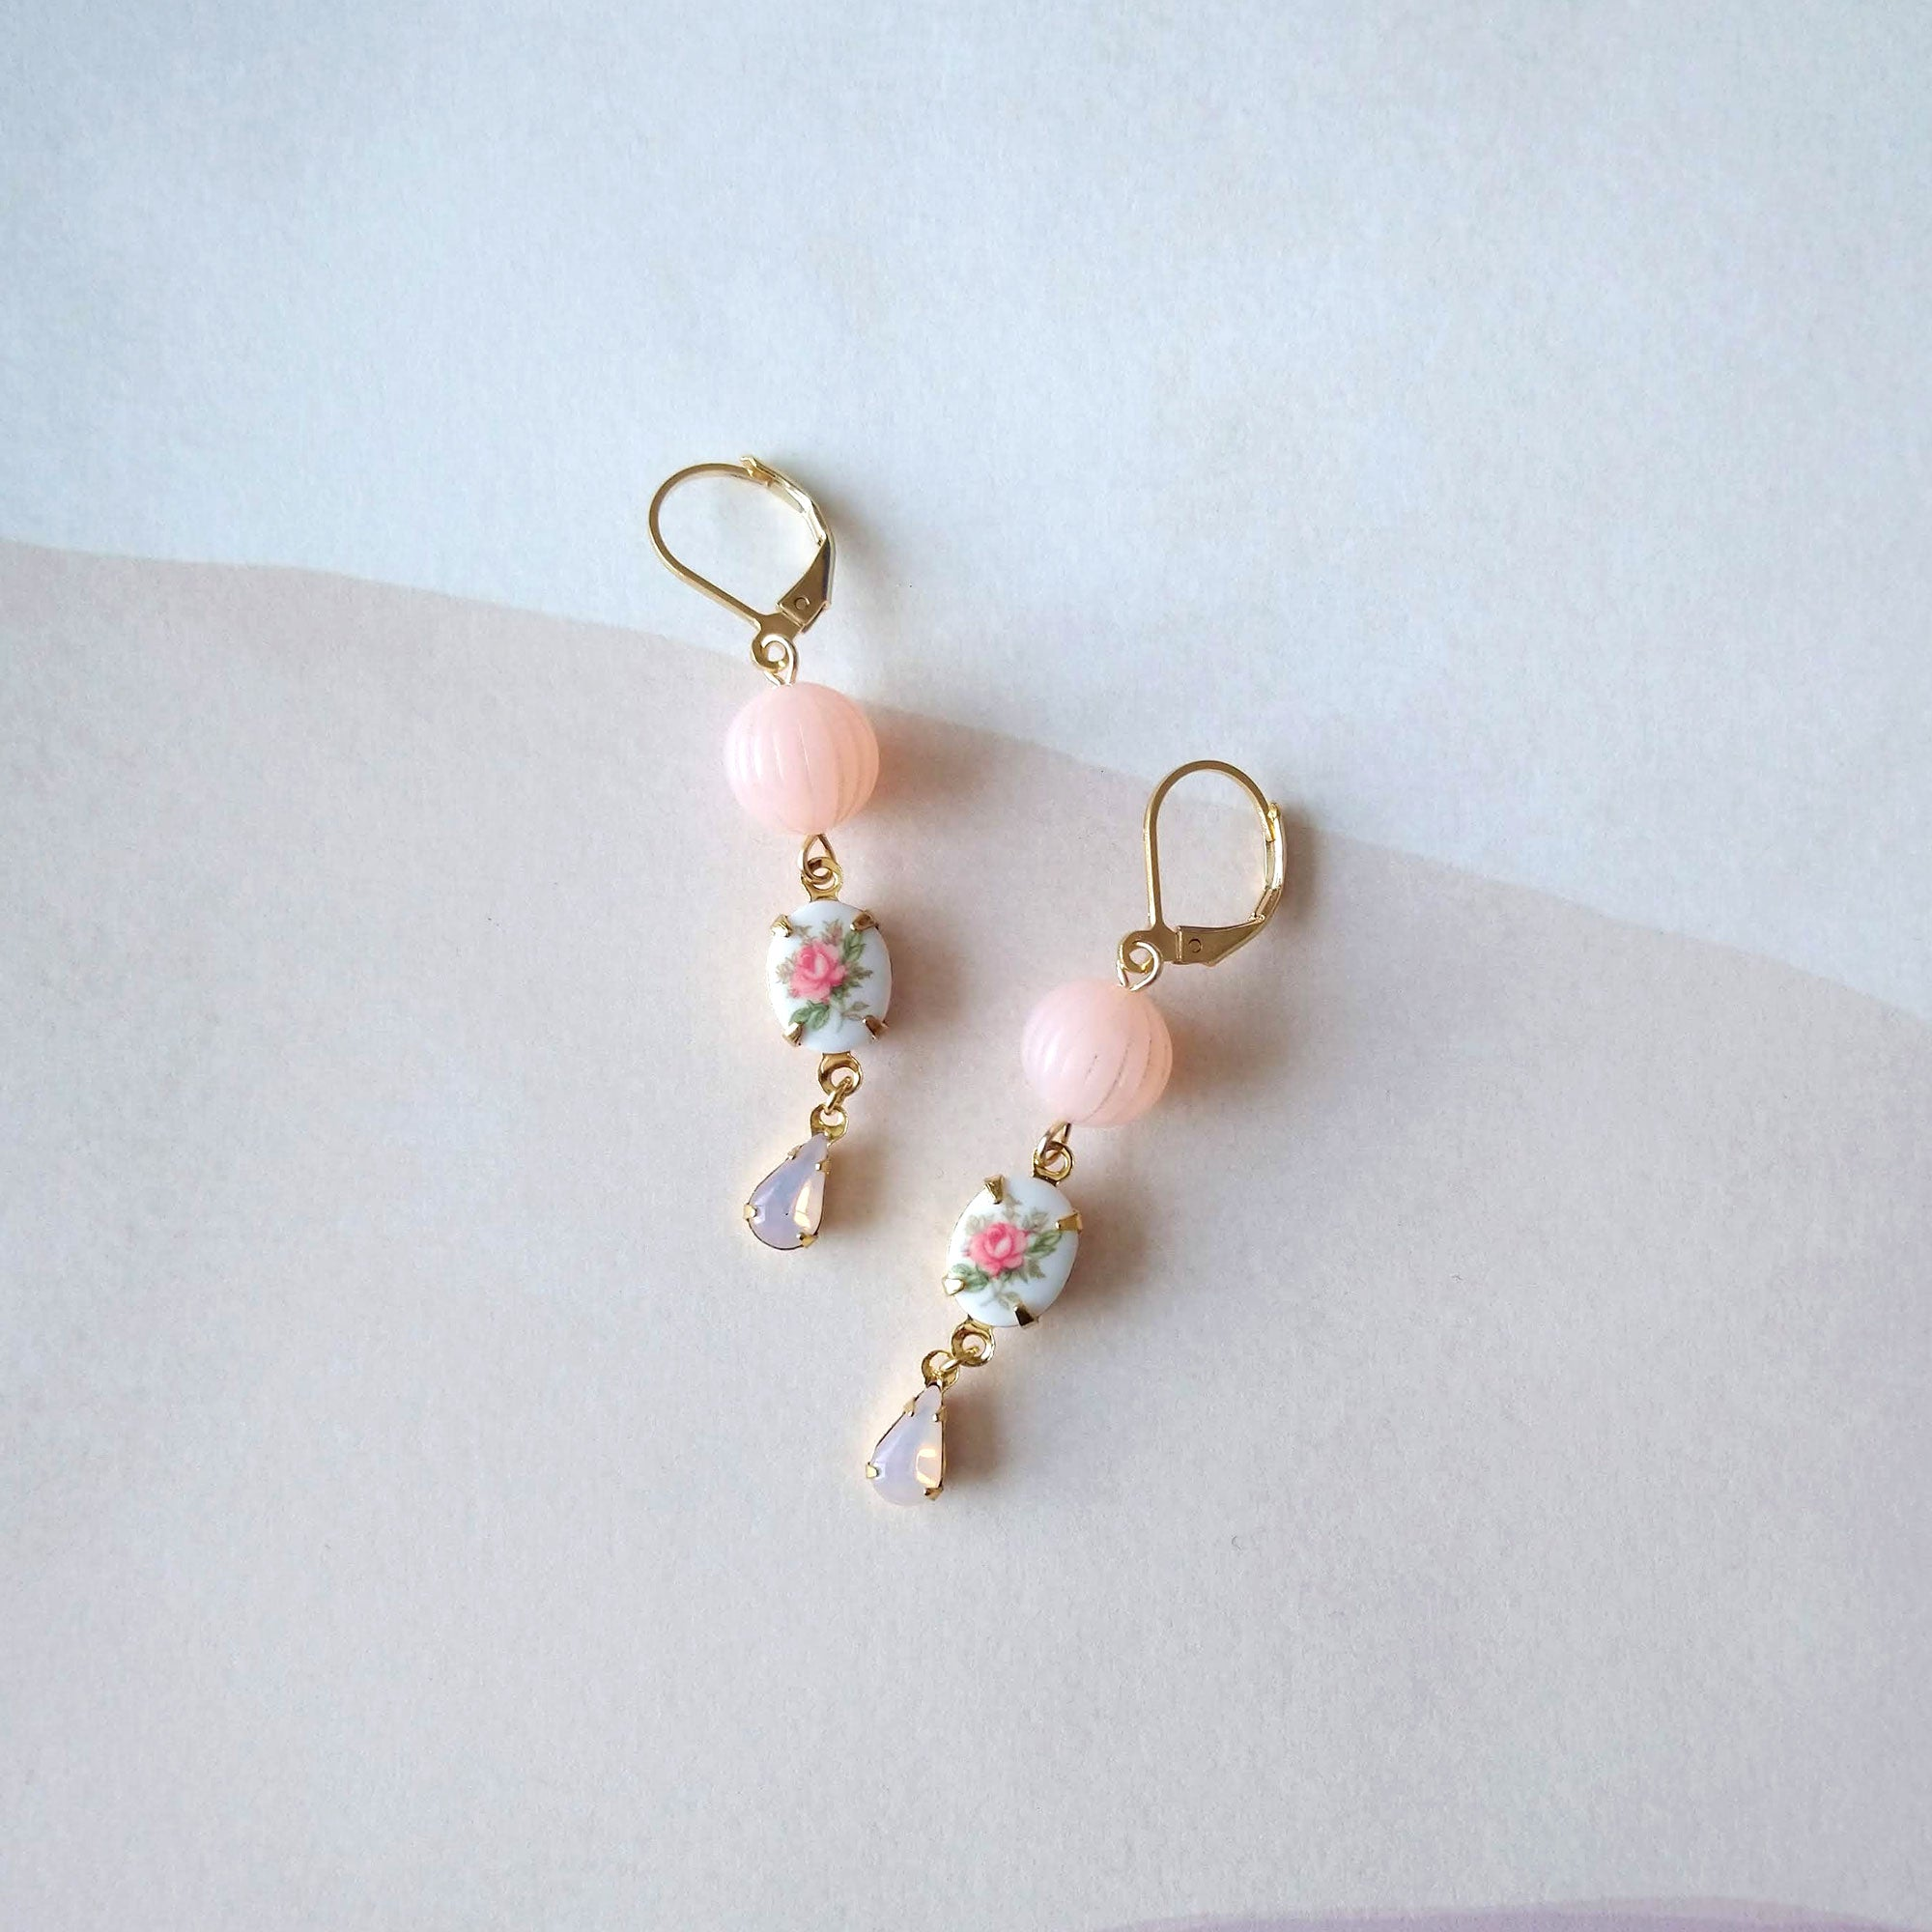 vintage style earrings opal pink rose cabochon